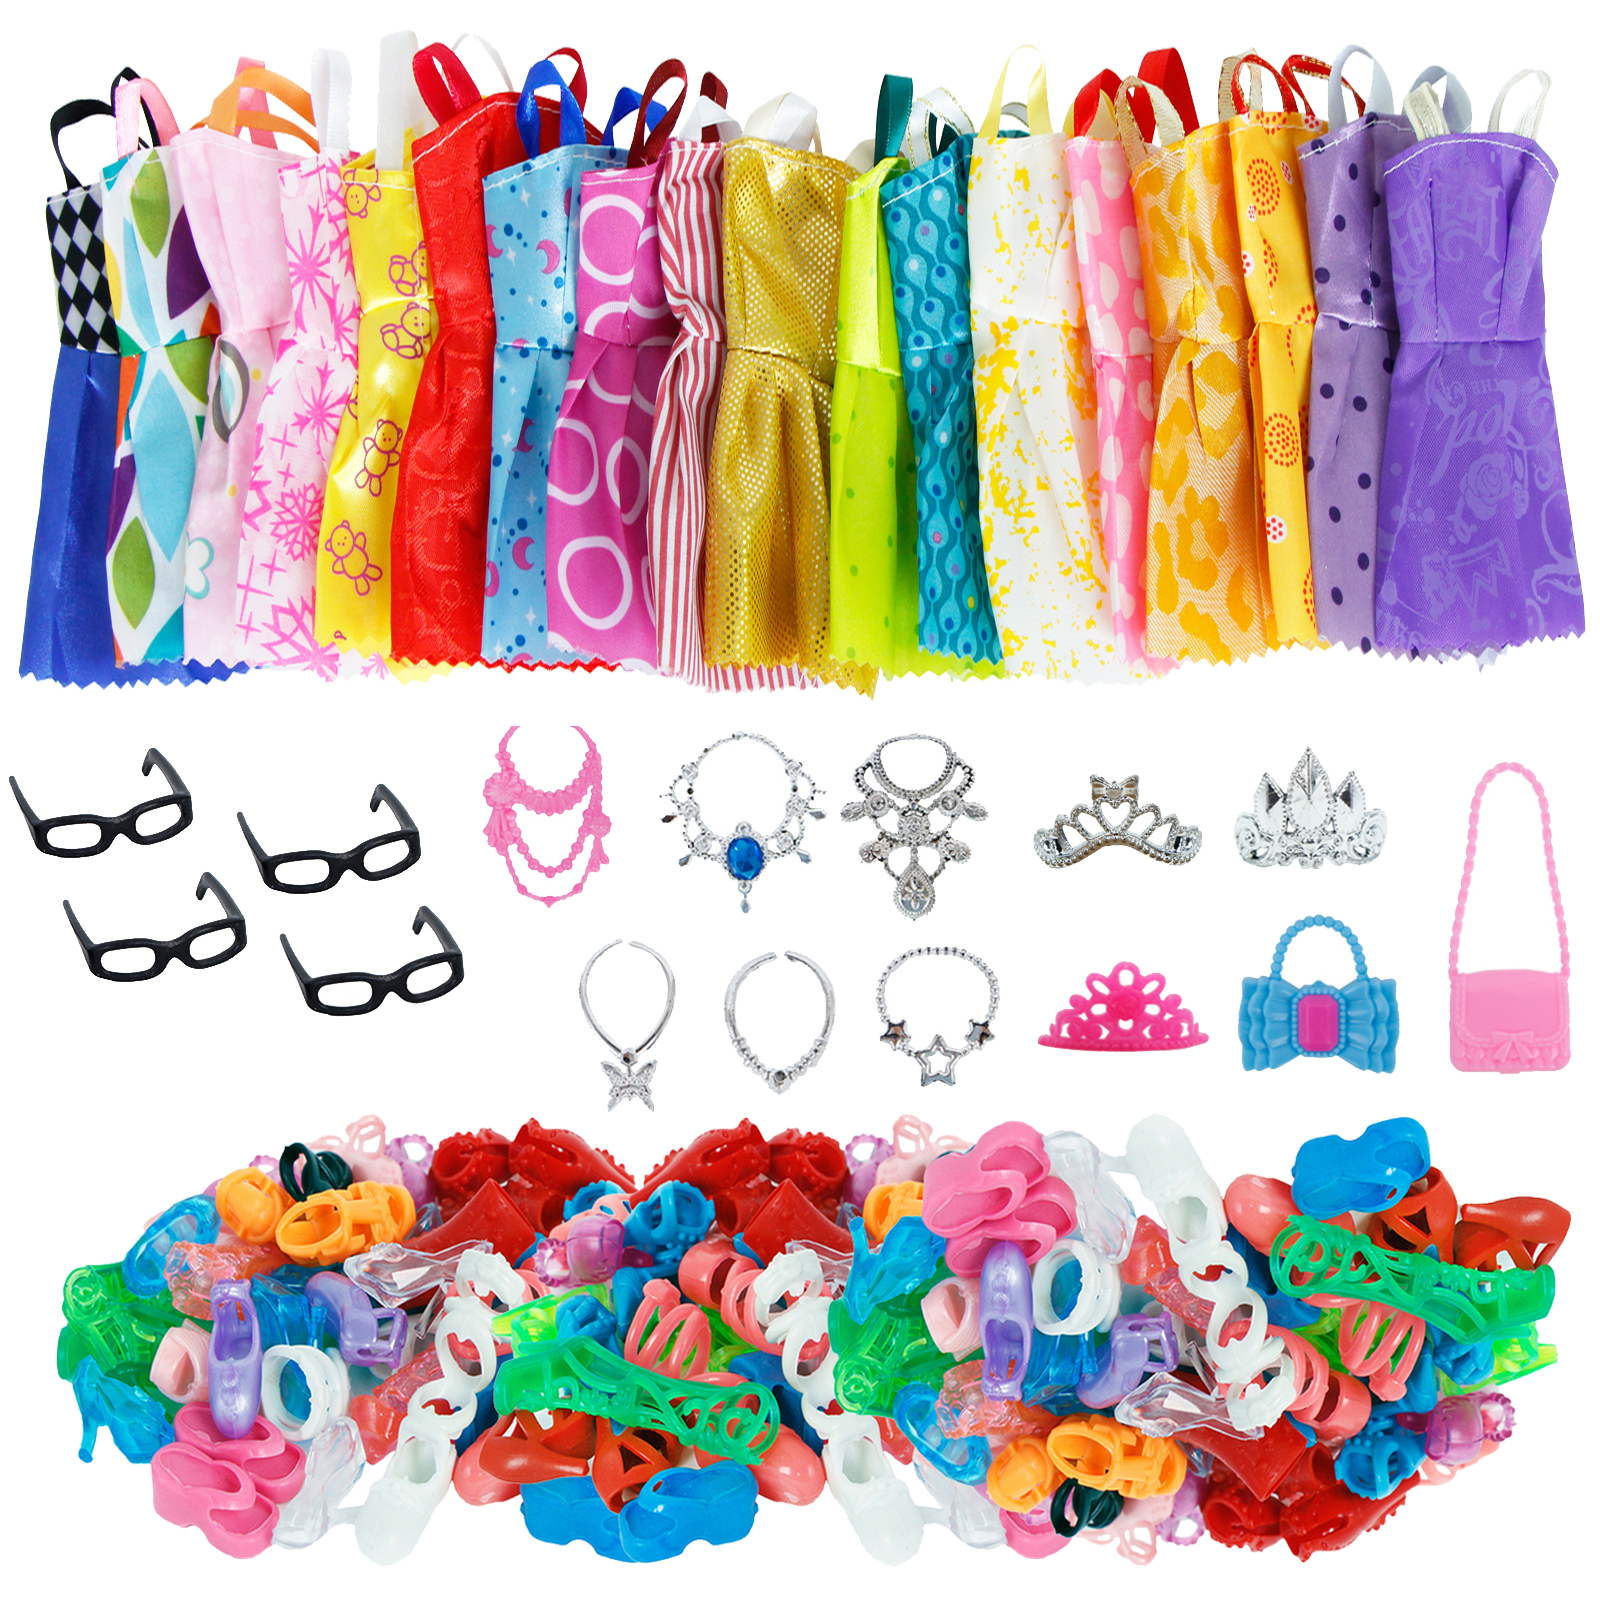 35 Item/Set Doll Accessories = 10 Shoes  + 6 Necklace 4 Glasses 3 Crowns 2 Handbags + 10 Pcs Doll Clothes Dress For Barbie Doll